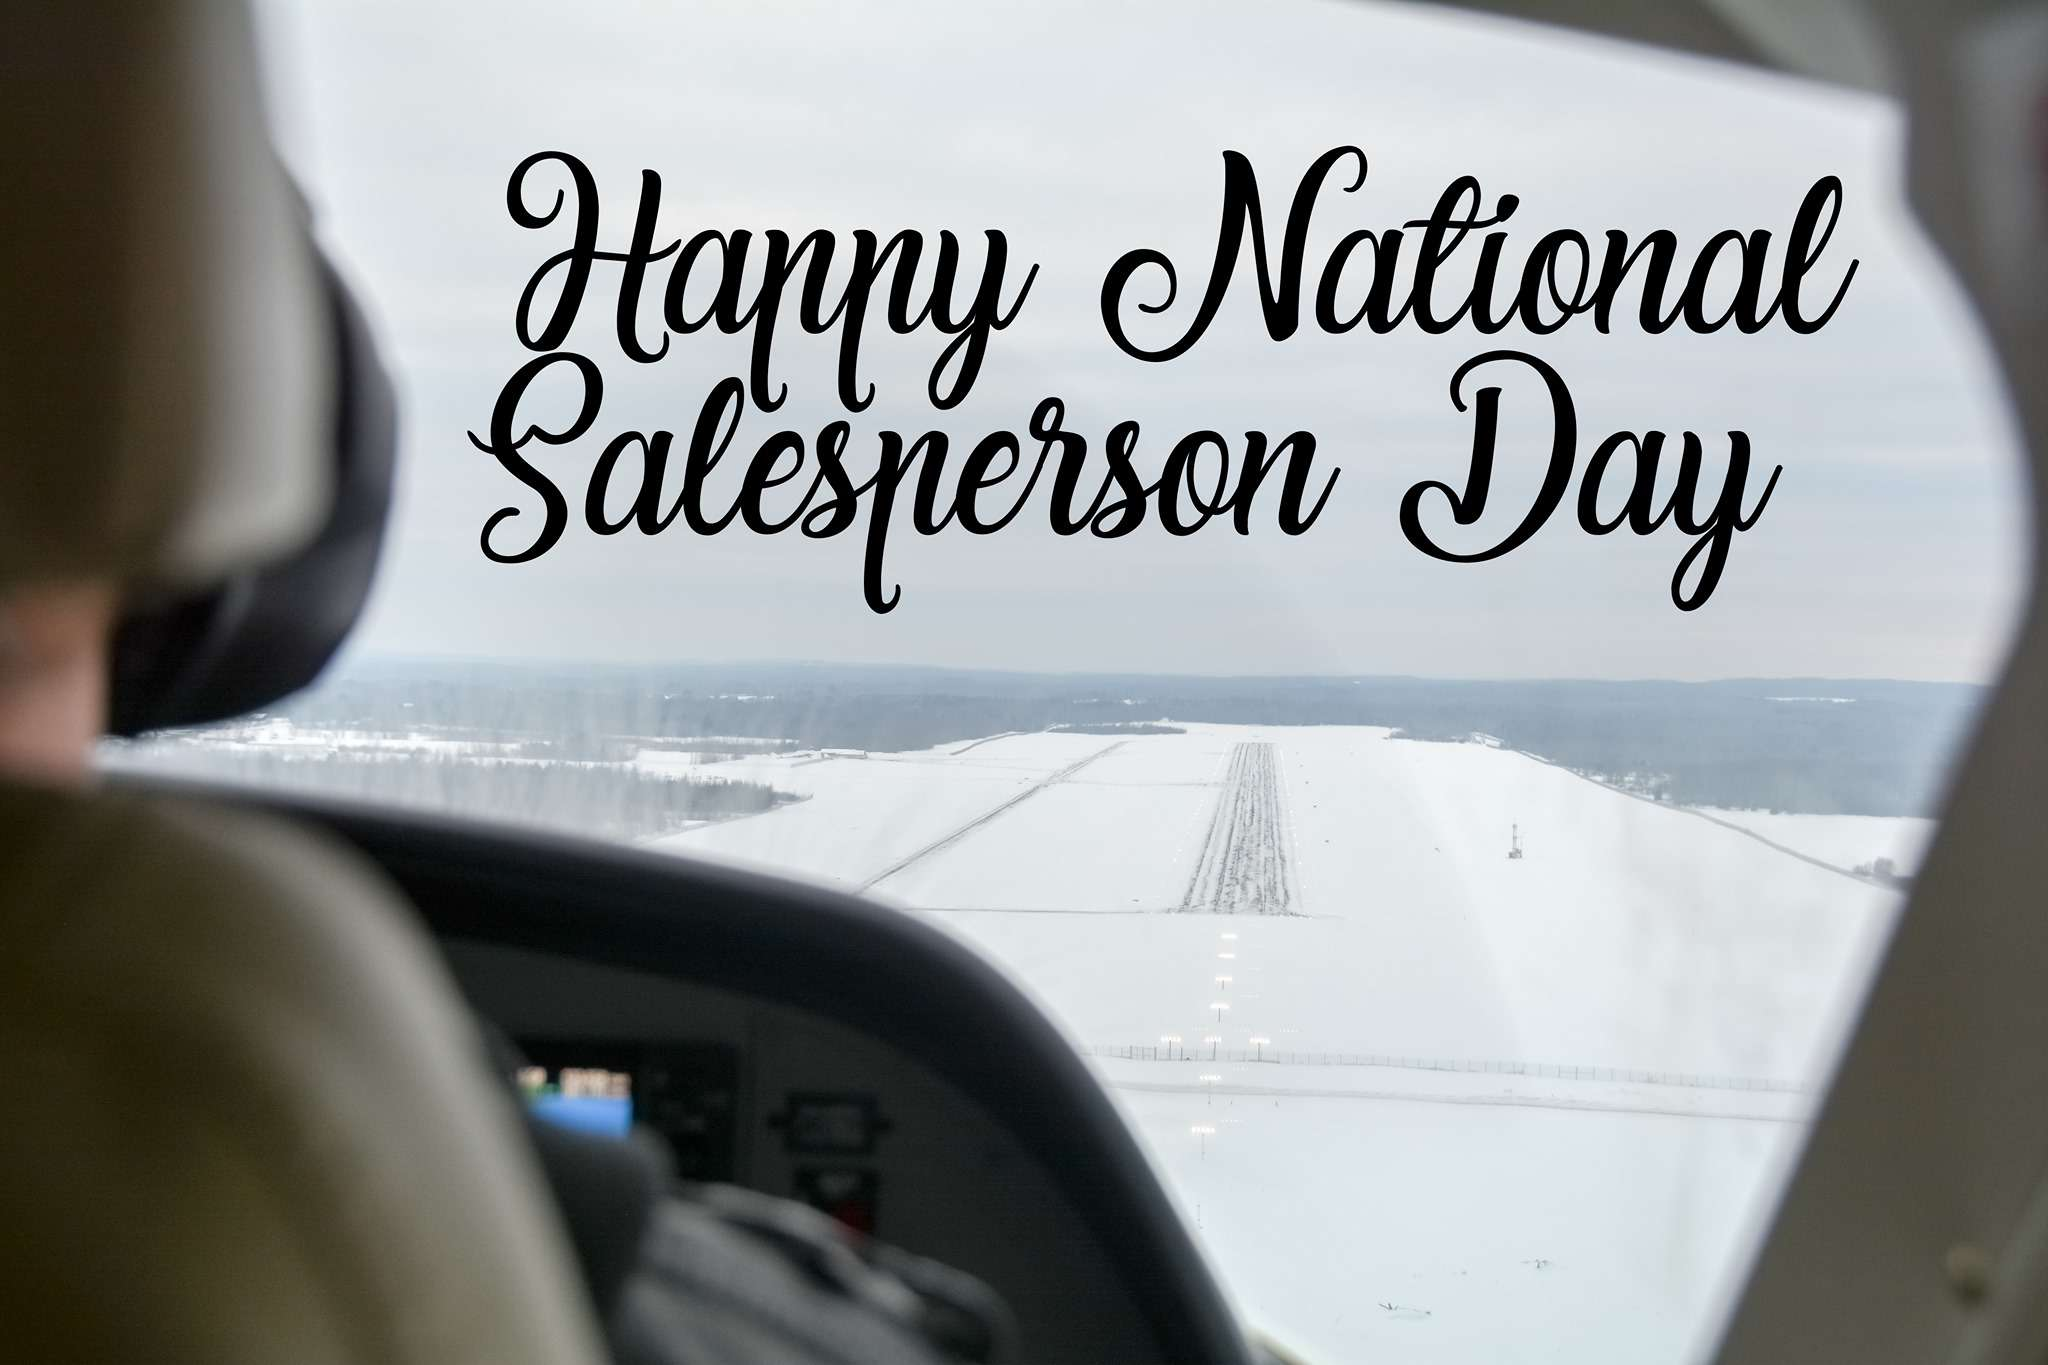 National Salesperson Day Wishes Unique Image